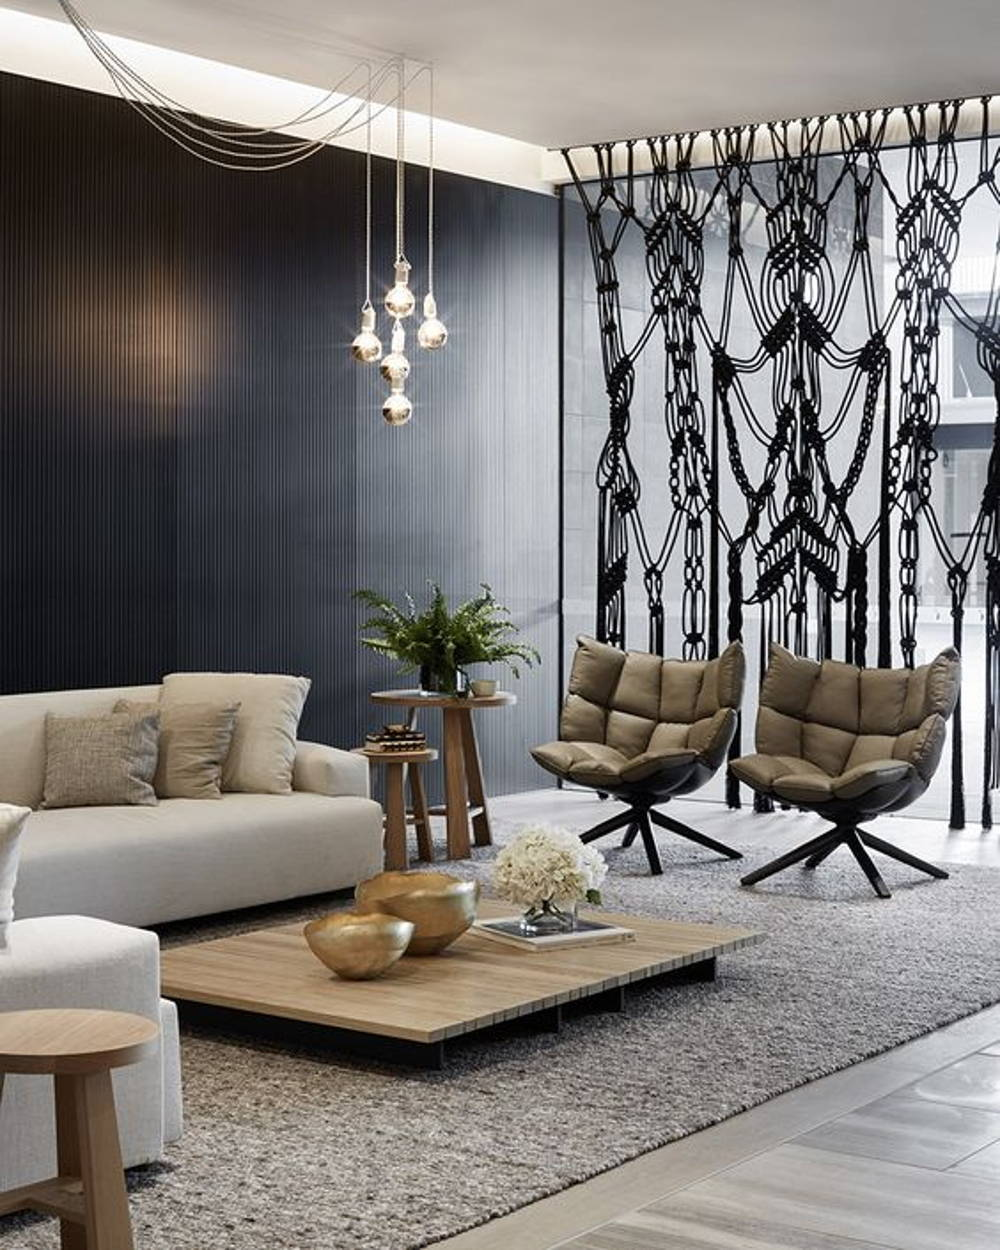 Curtain divider living room